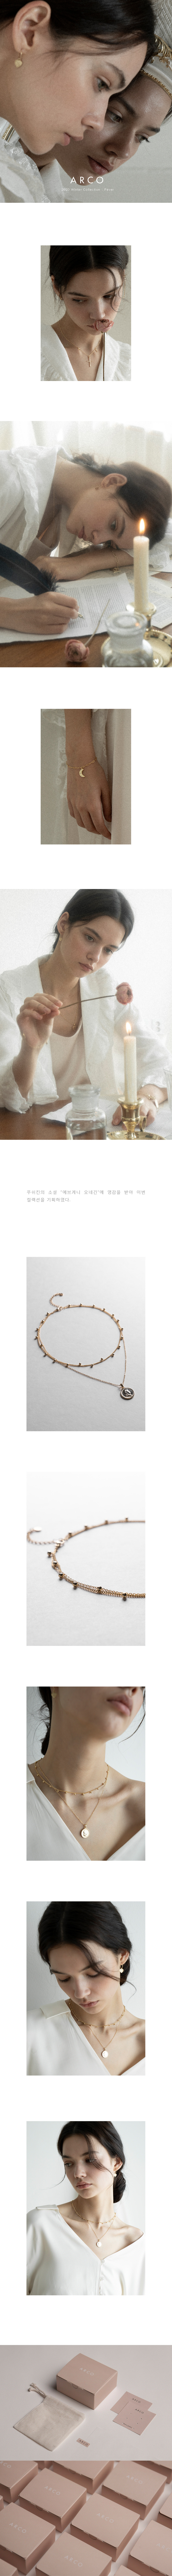 아르코(ARCO) Double Chain Coin Necklace 2